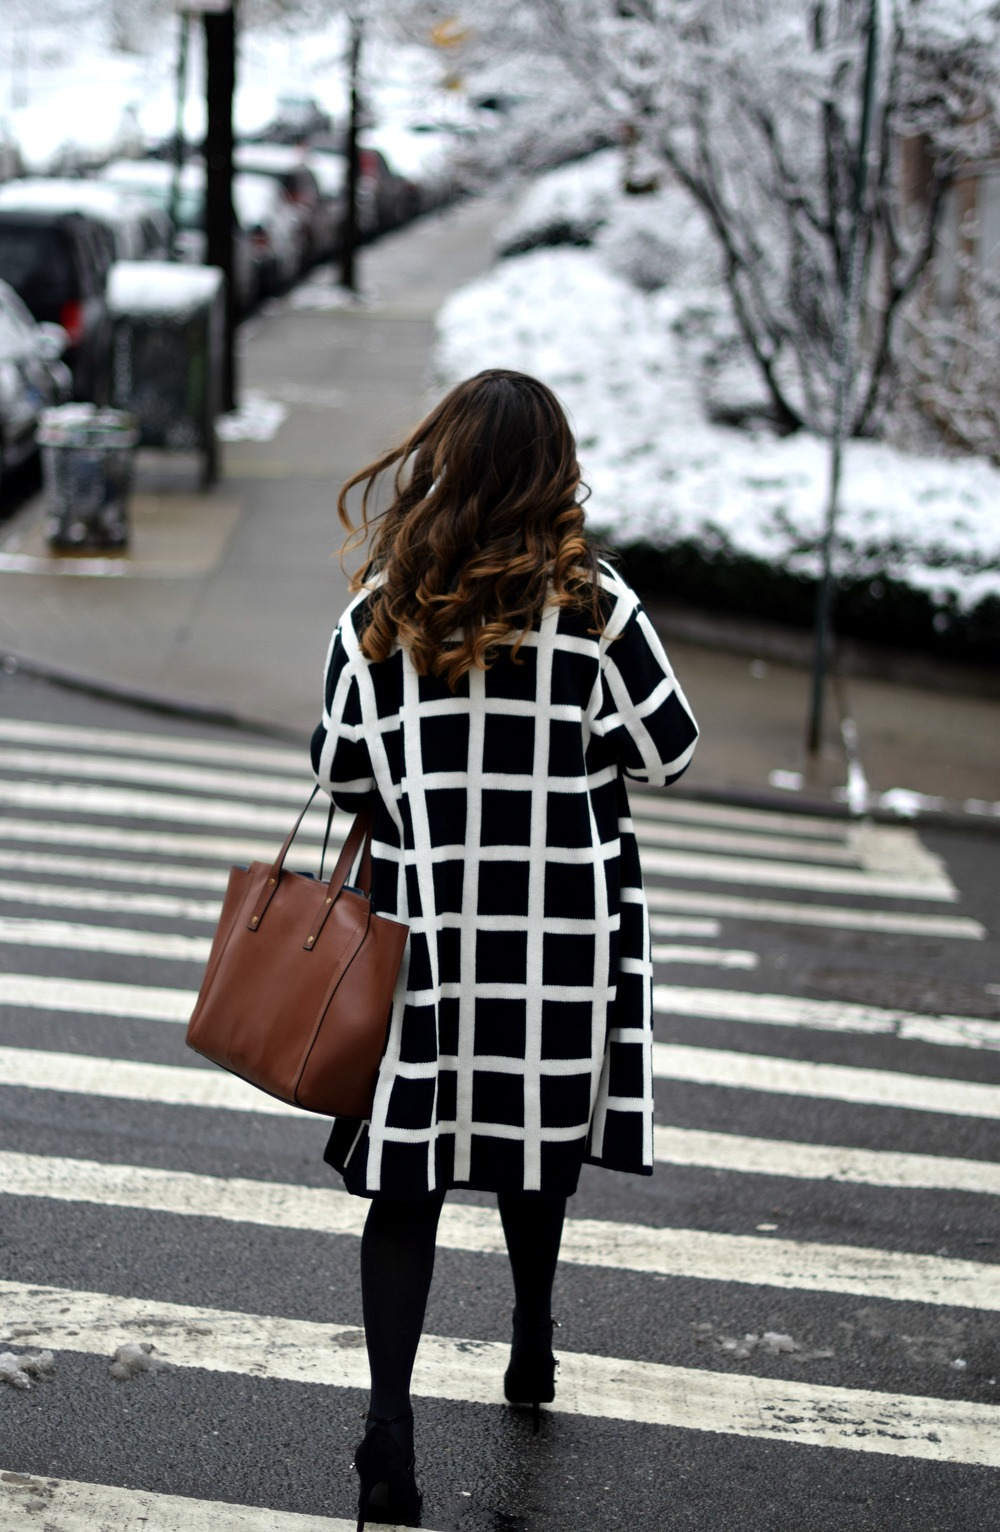 Black and White Windowpane Sweater Trescool Louboutins & Love Fashion Blog Esther Santer NYC Street Blogger Winter Wear Shop Cozy Layers Zara Black Heels Ivanka Trump Soho Tote Bag Velvet Dress Outfit Inspo OOTD Model Hair Beauty Photoshoot Sunglasses.jpg